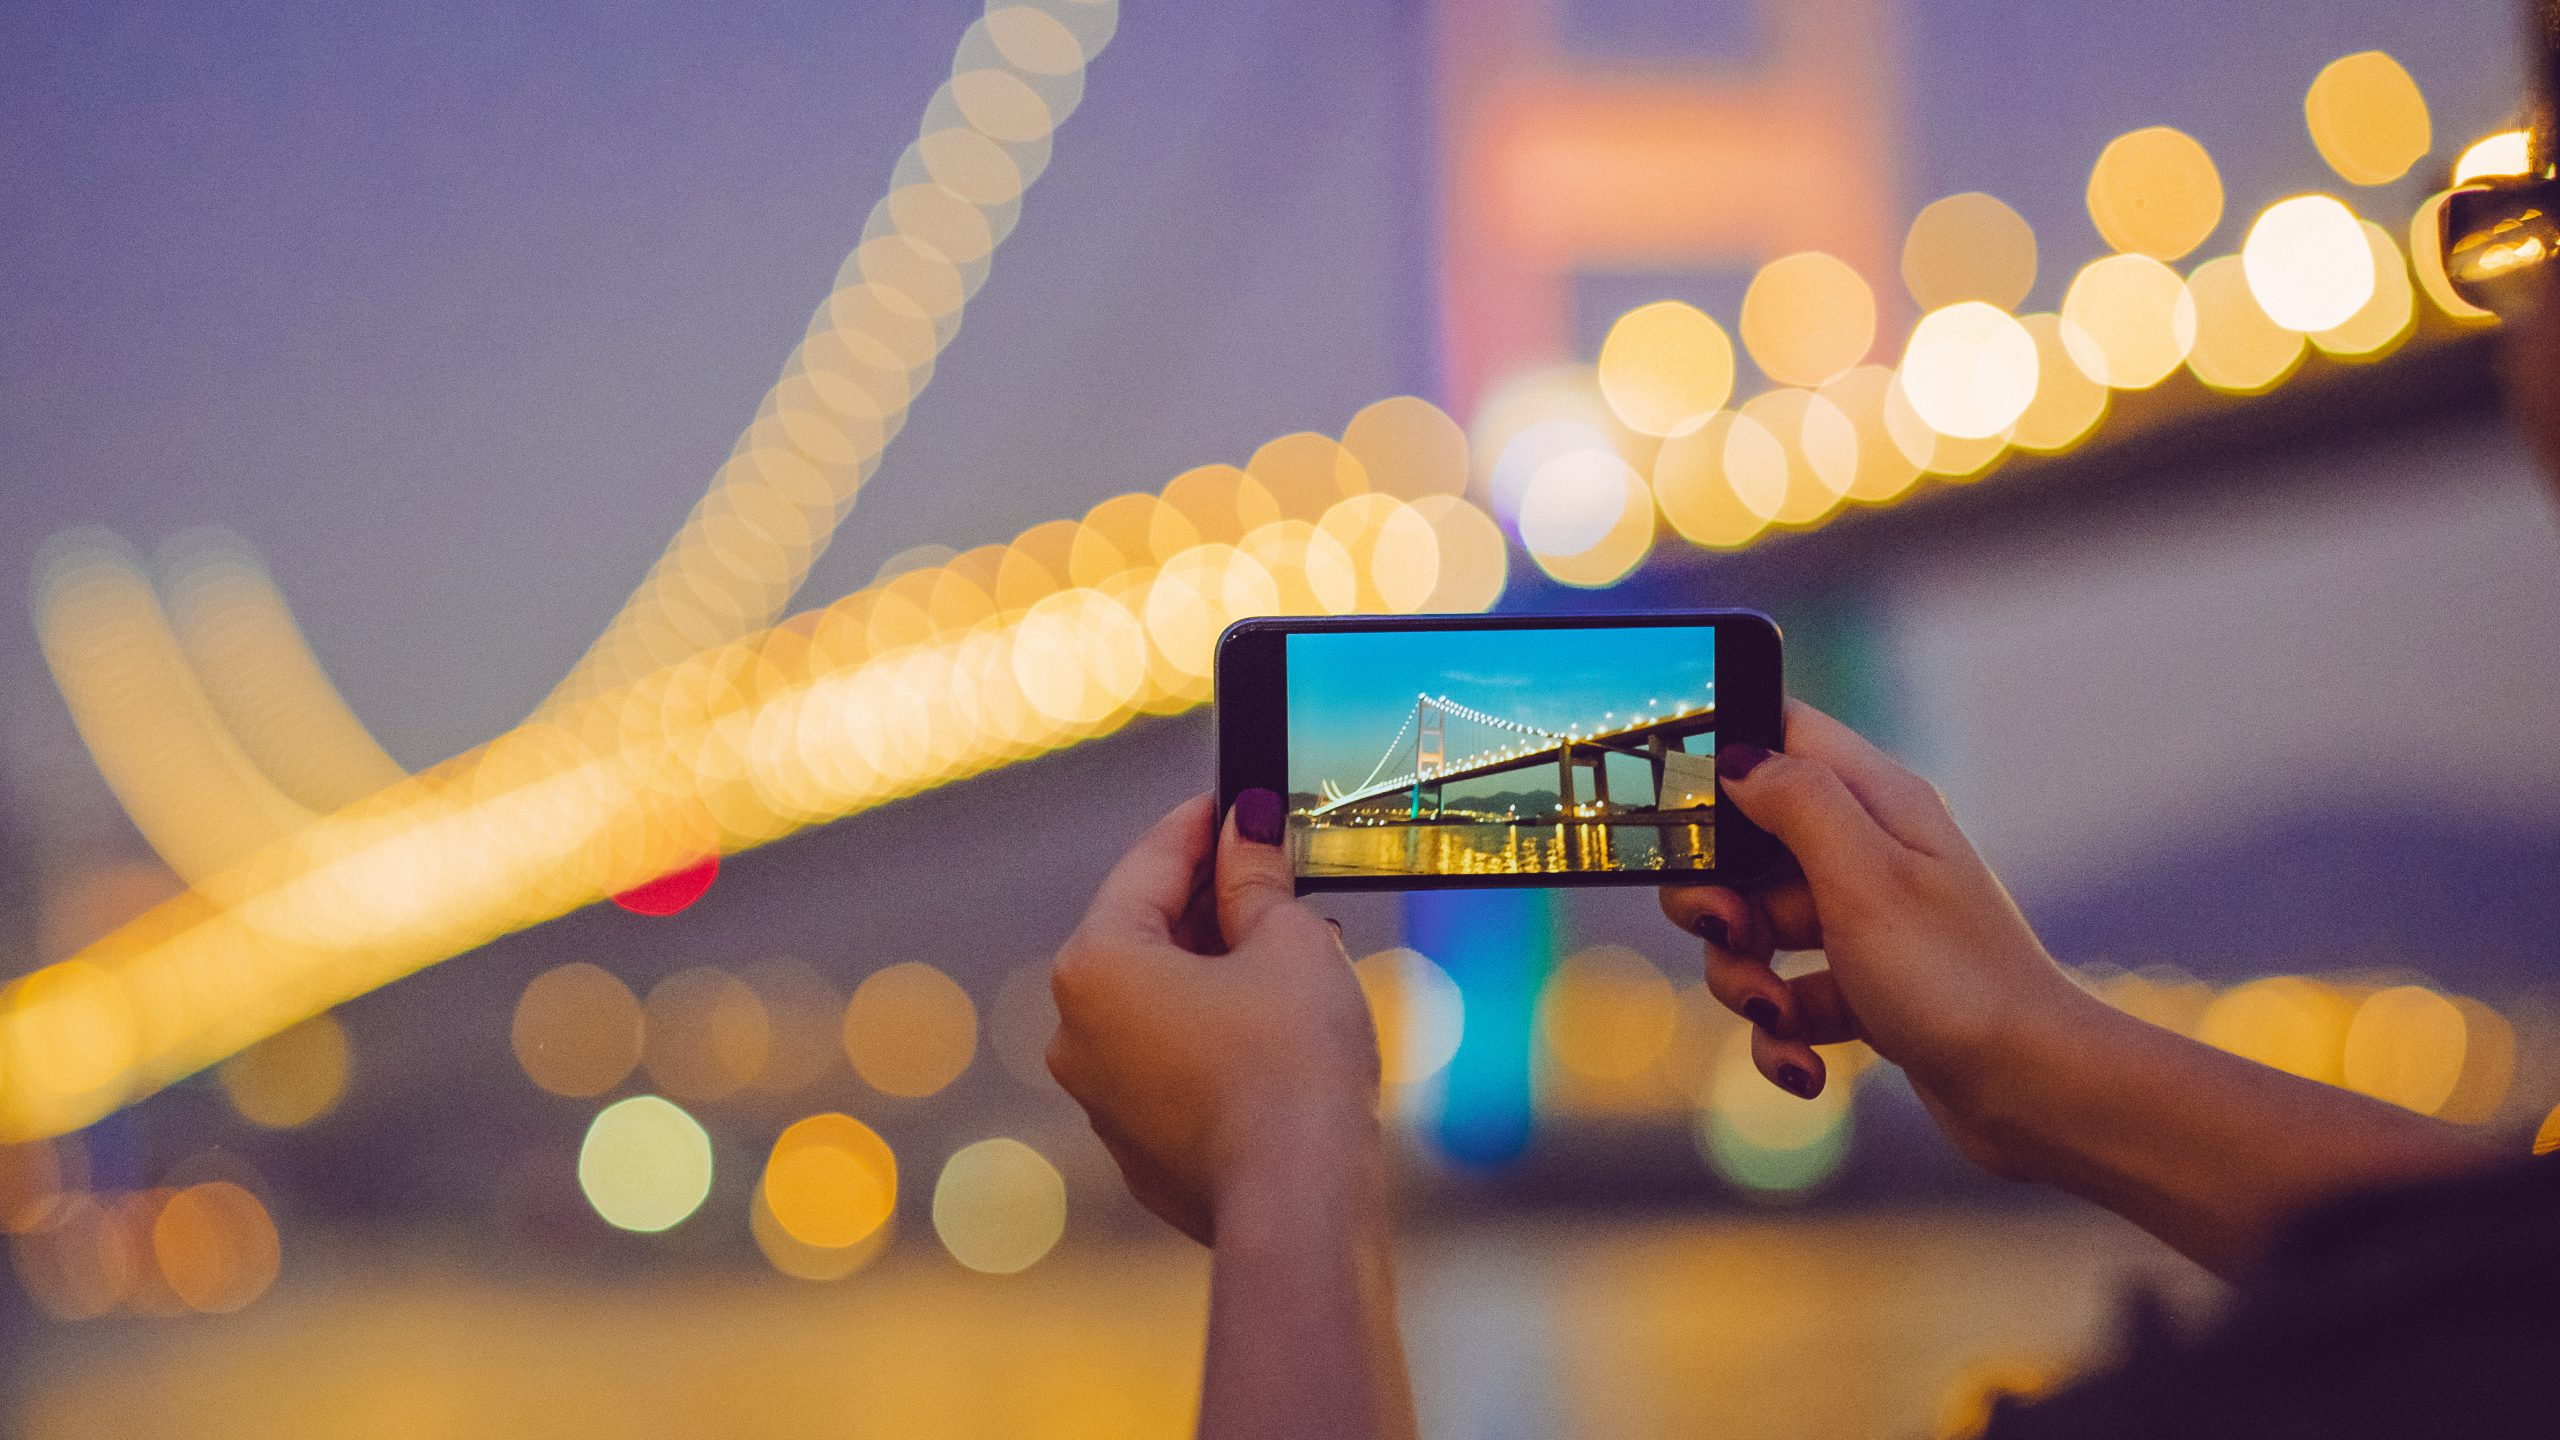 The importance of HDR in smartphone cameras